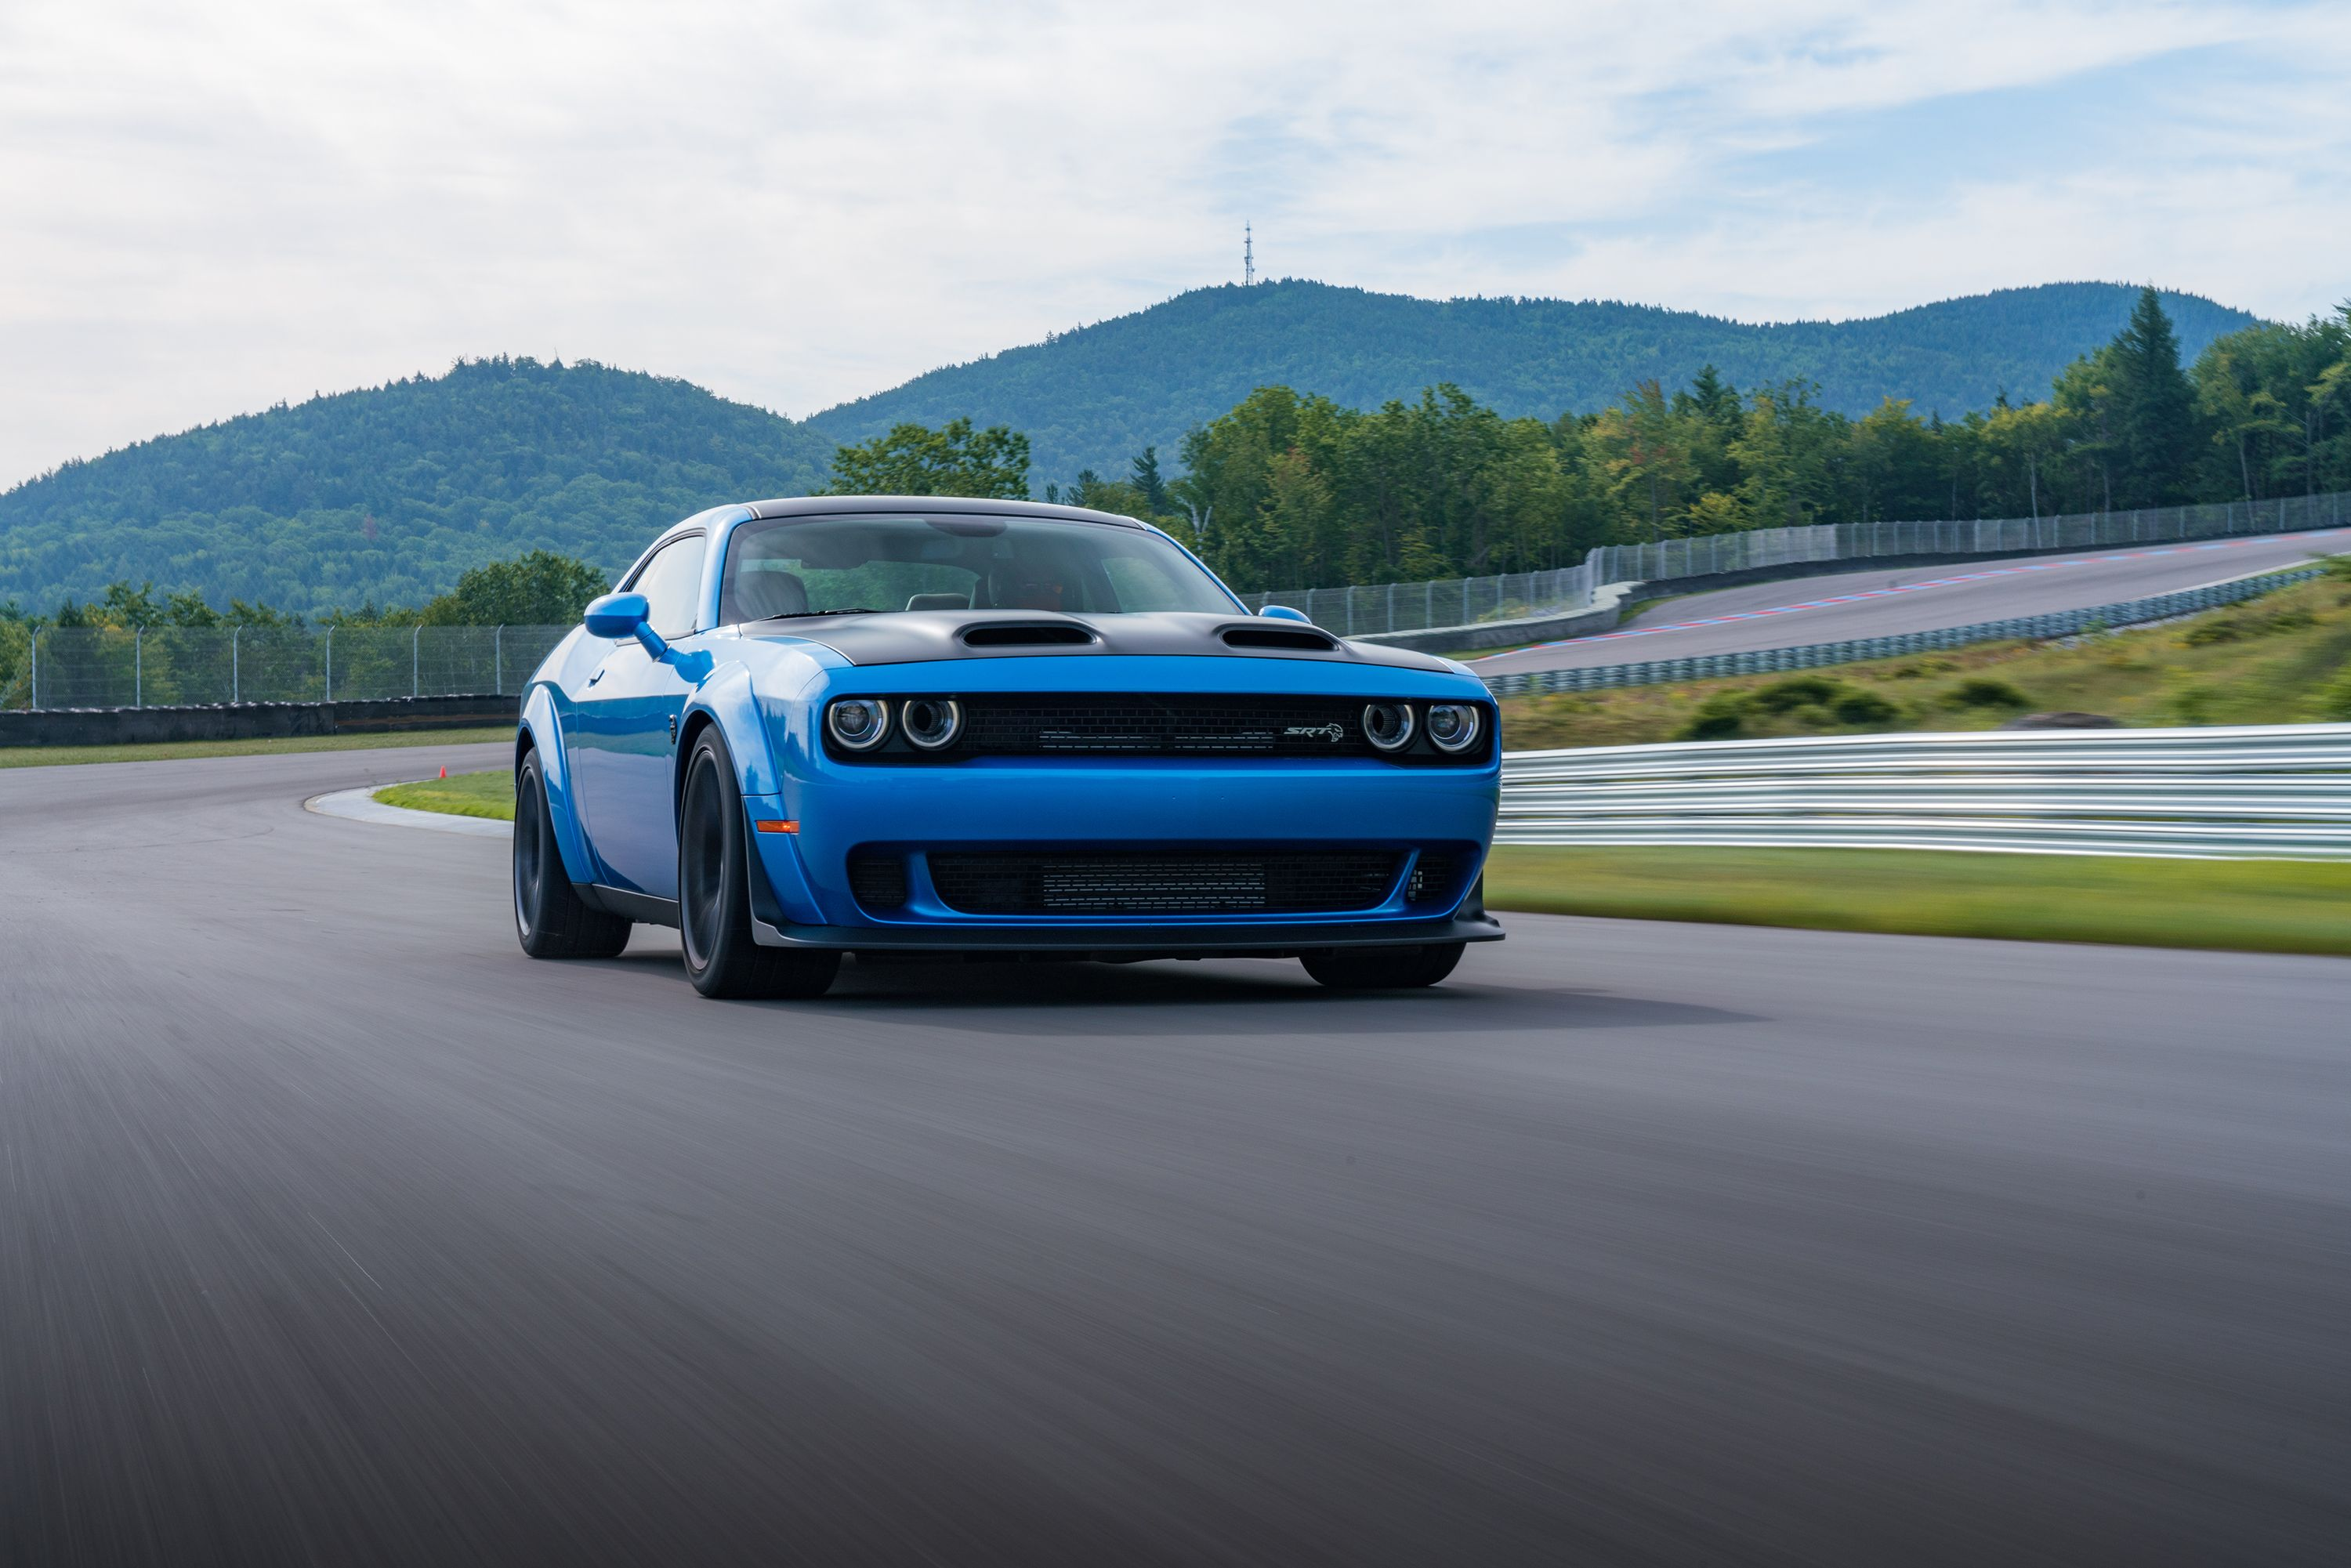 2020 Dodge Challenger Srt Hellcat Review Pricing And Specs